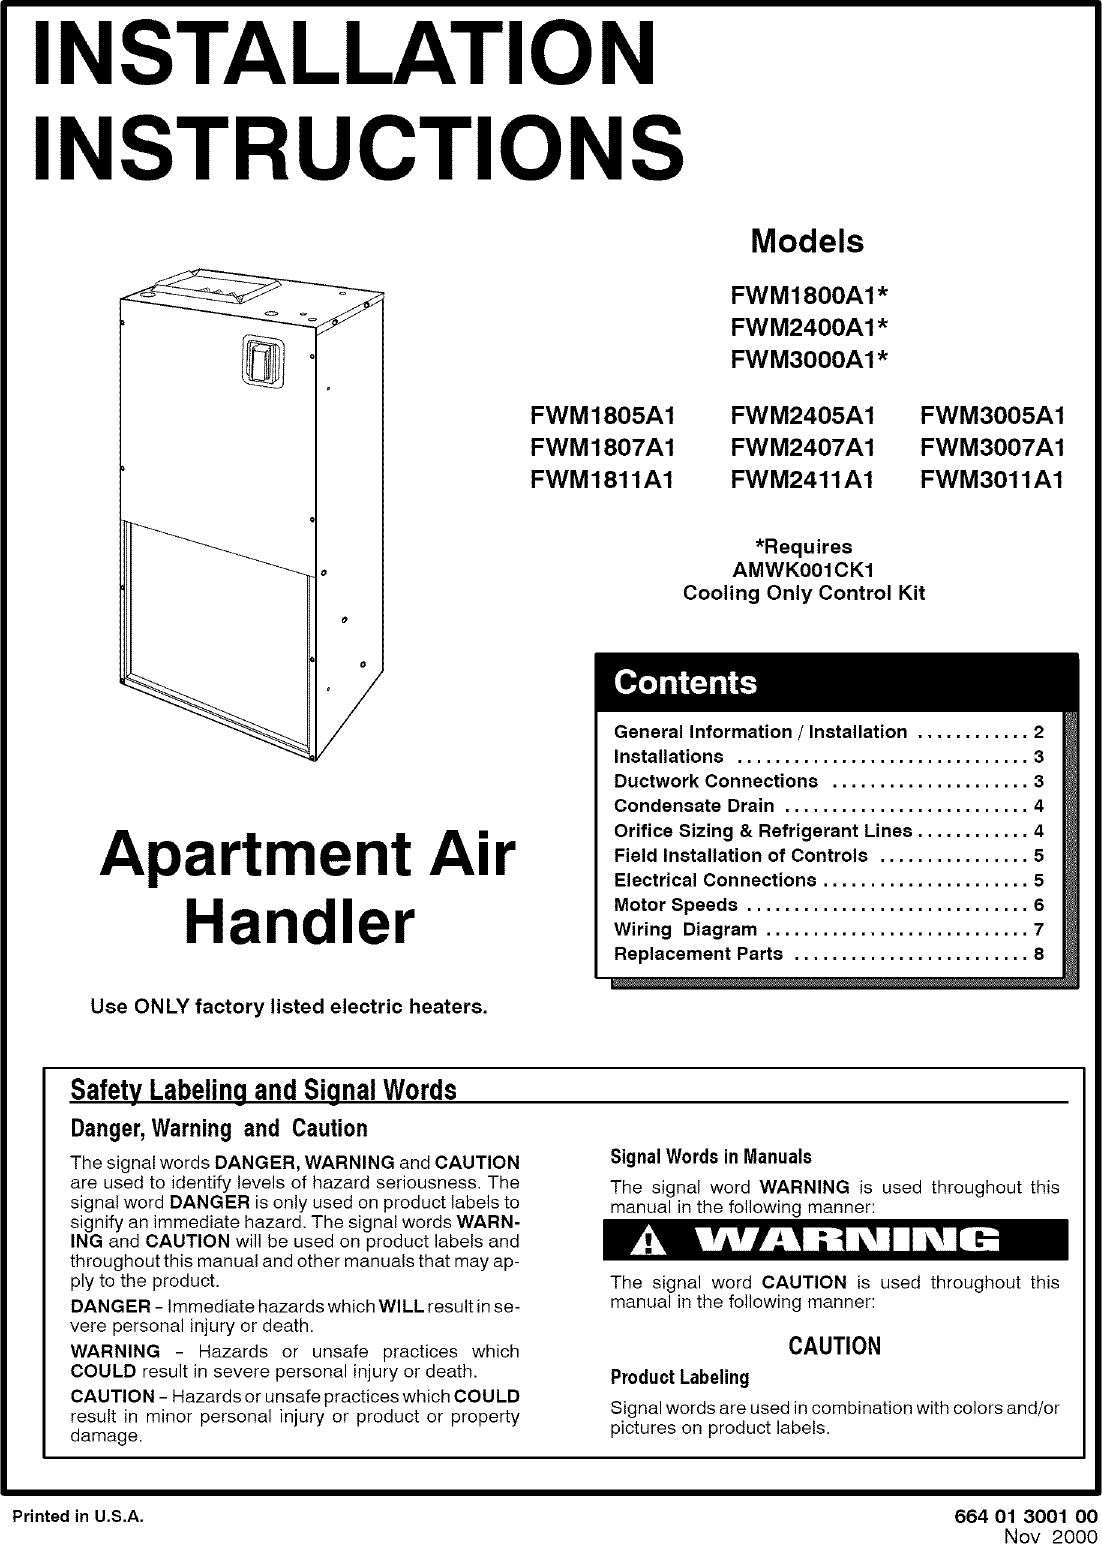 Icp Fwm2400a1 User Manual Air Handler Manuals And Guides L0502487 Apartment Wiring Diagram